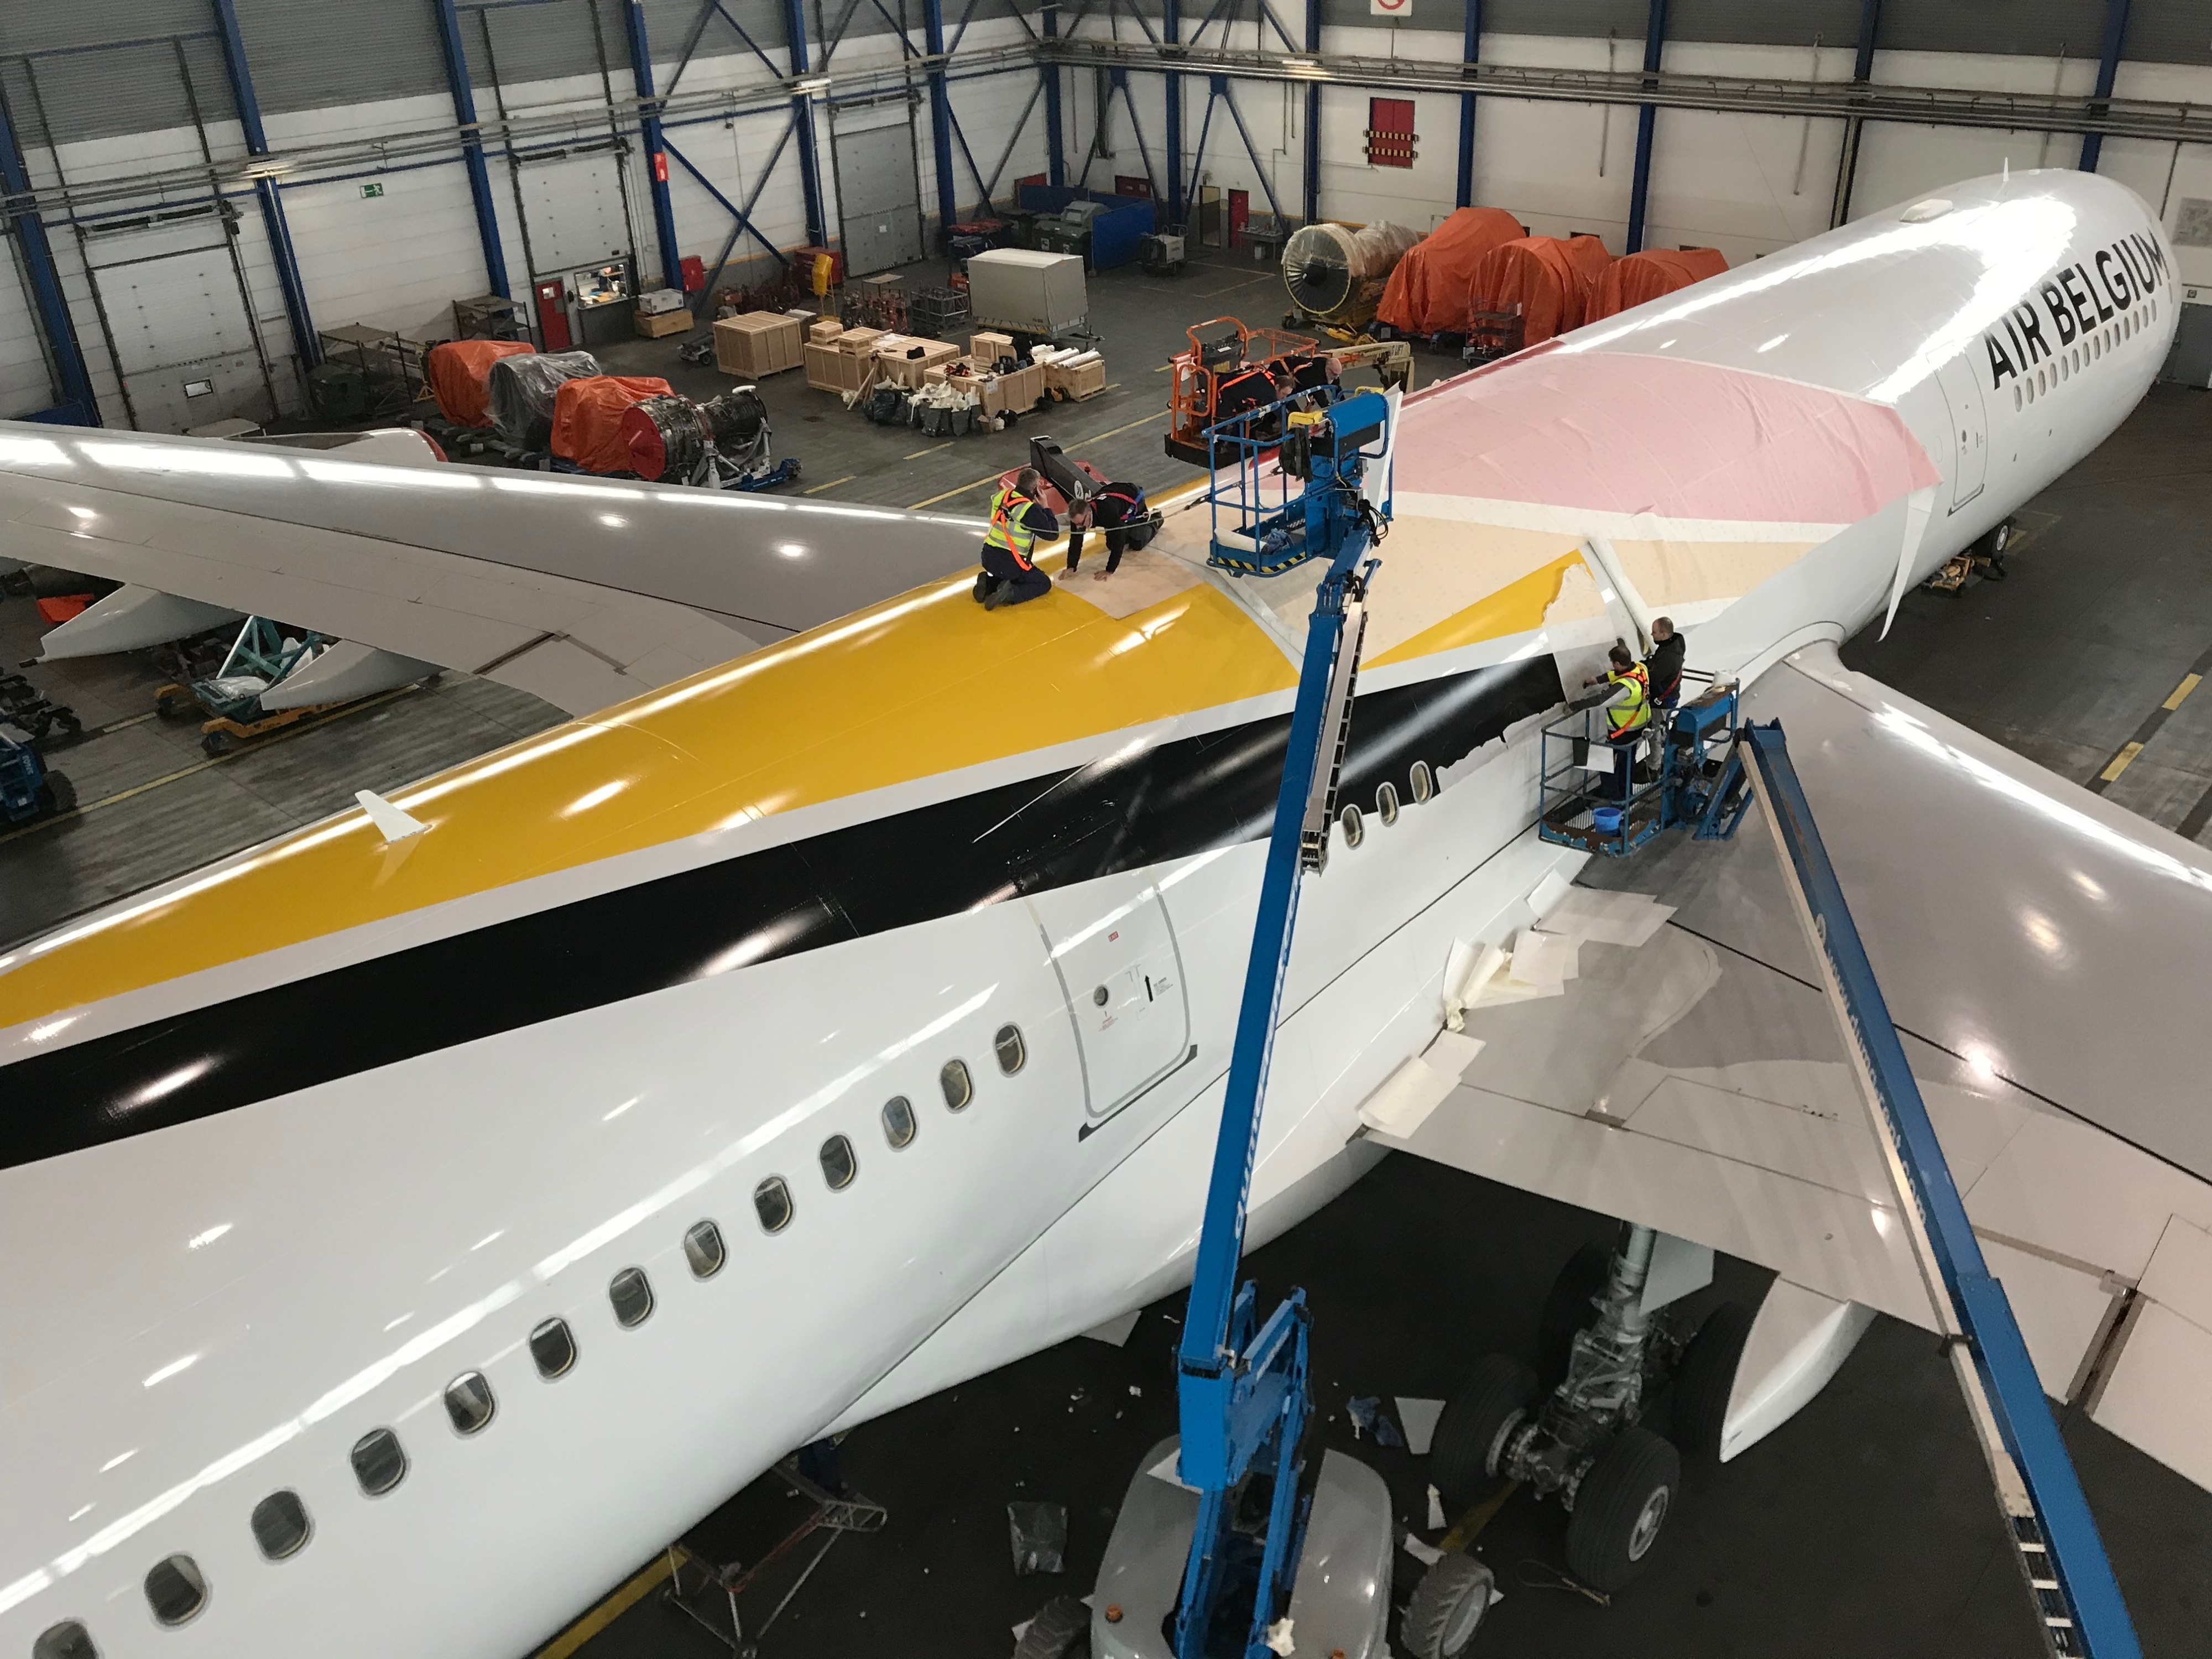 Case study: New Belgian carrier Air Belgium contracts BCO Aviation for its A340 livery